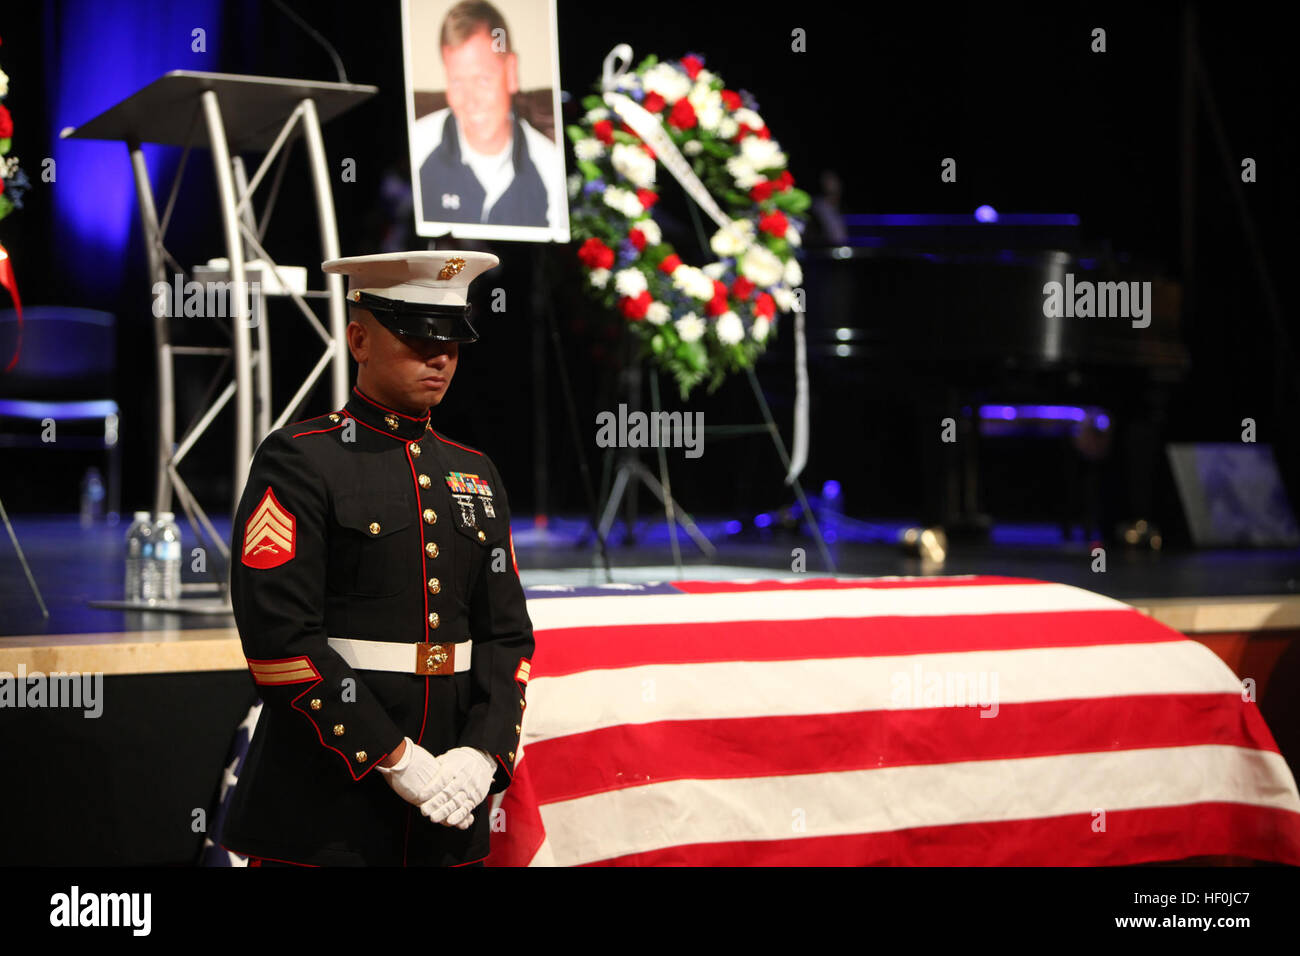 During the memorial ceremony for Officer Jeremy Henwood, Marines and police officers stand guard over his casket - Stock Image